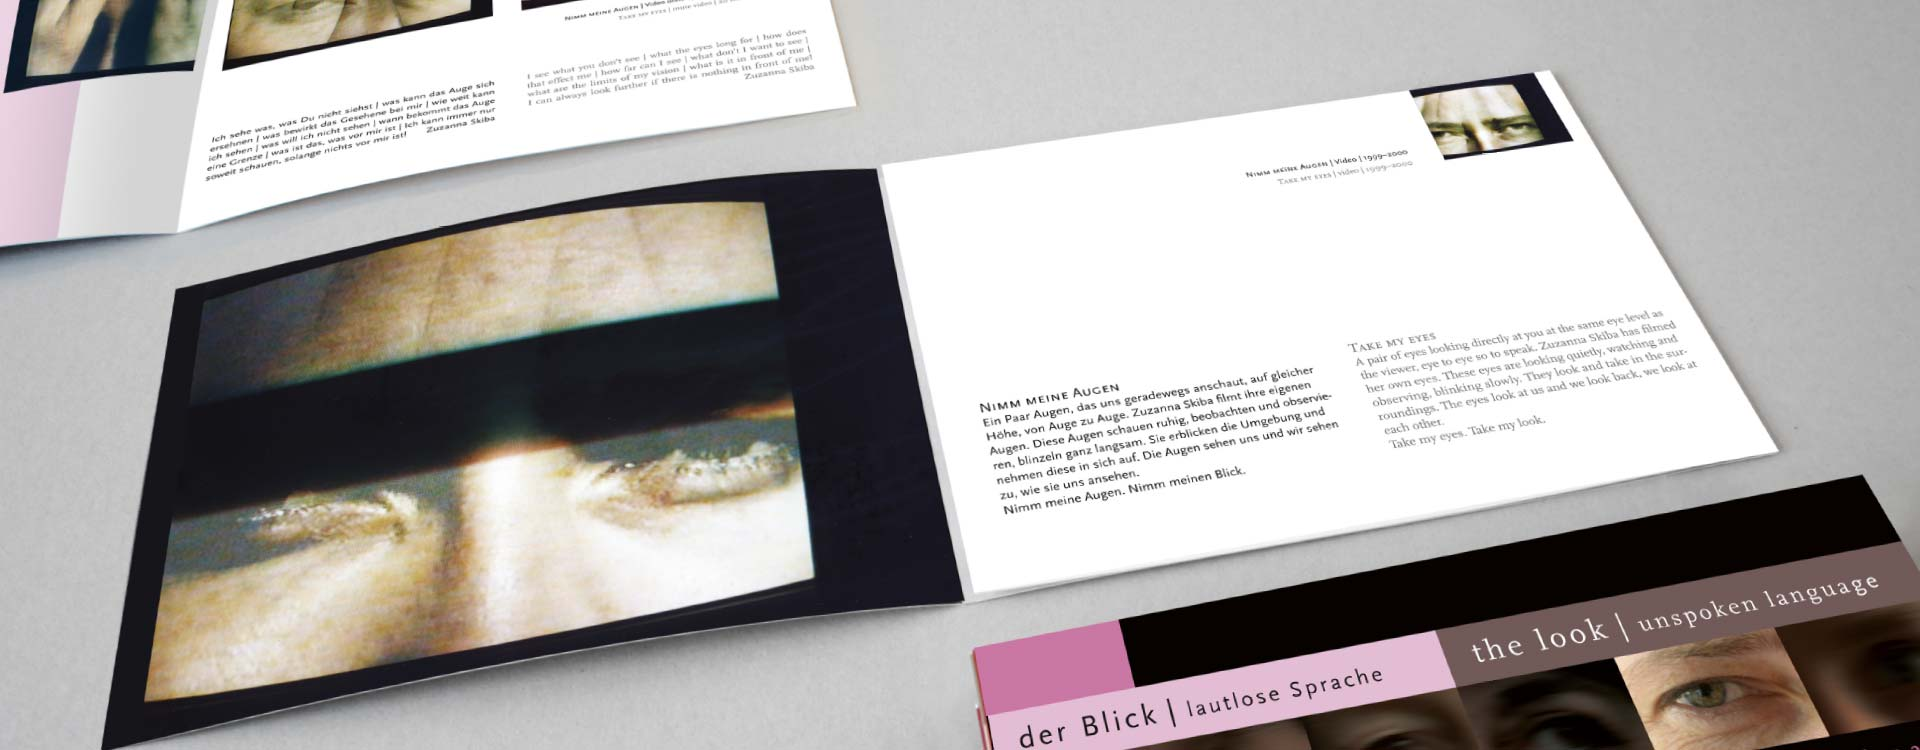 Leaflet about the work of Zuzanna Skiba in the exhibition Der Blick; Design: Kattrin Richter | Graphic Design Studio